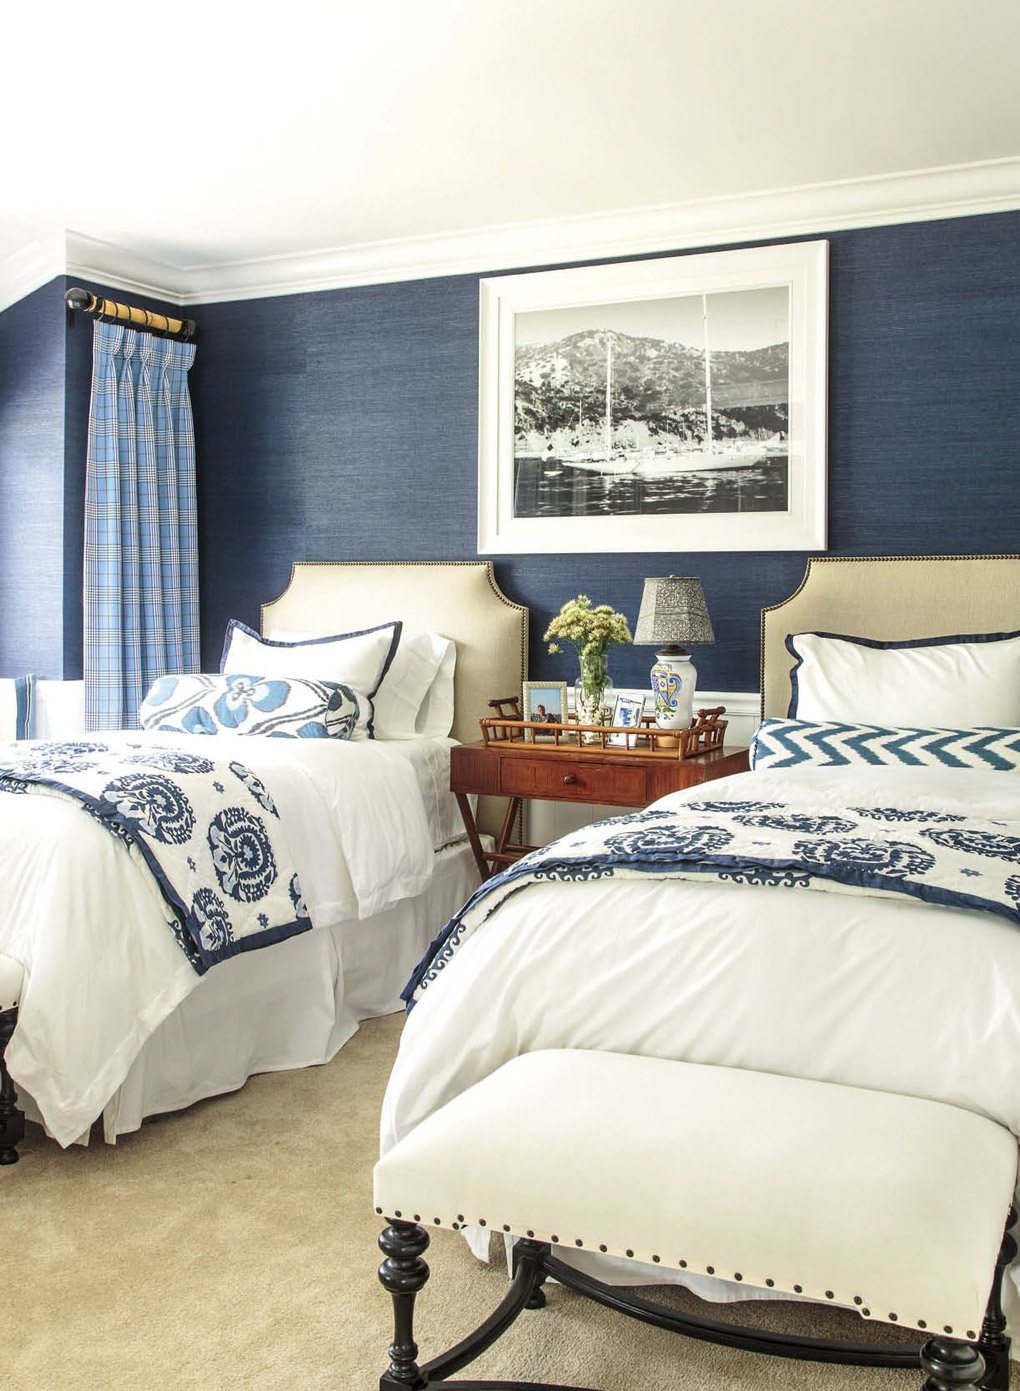 Regal British colonial style bedroom with two luxurious twin beds and blue linen textures walls.